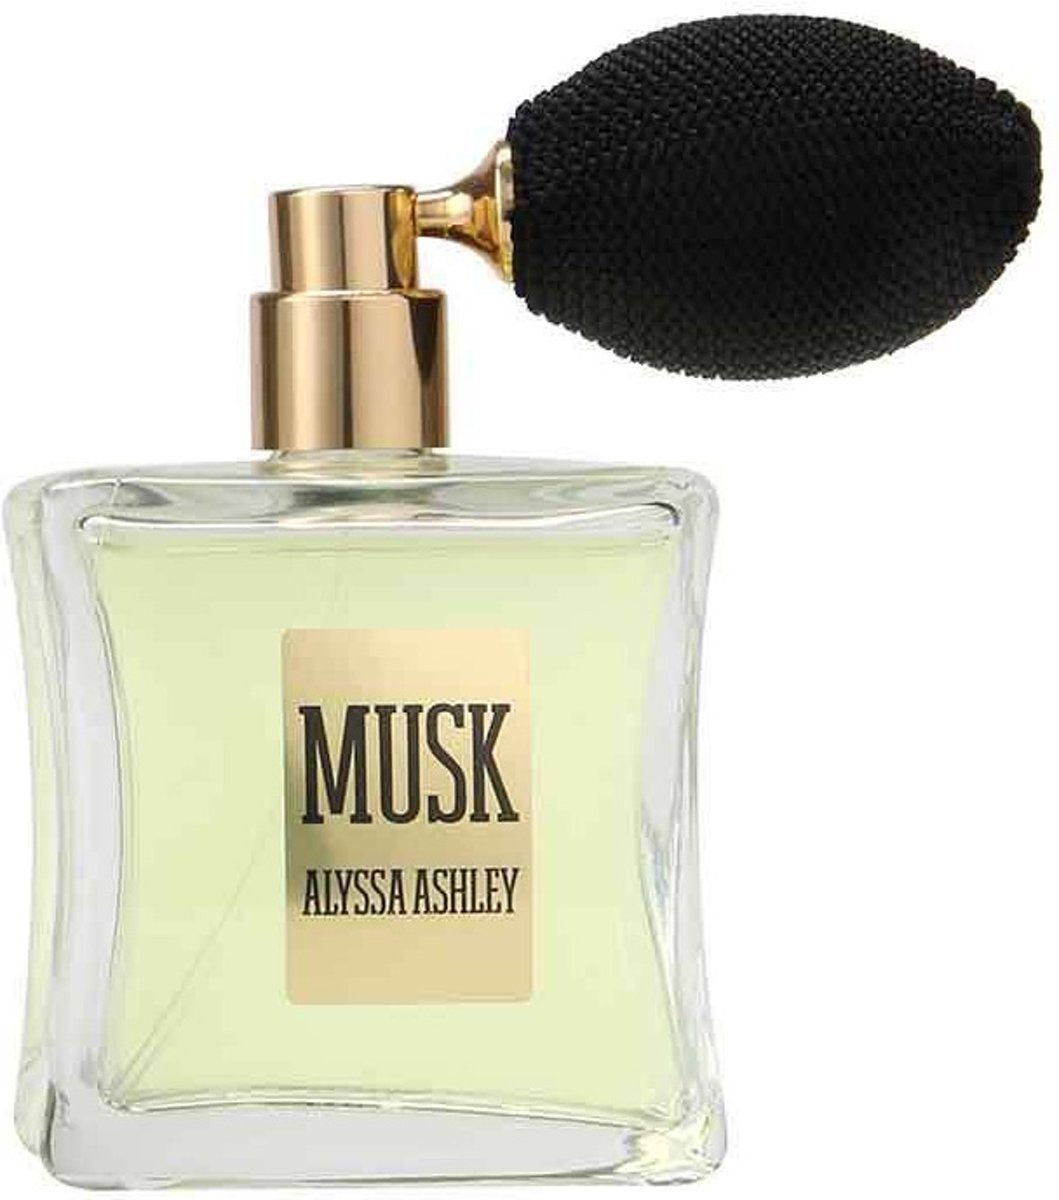 Alyssa Ashley Musk Eau De Toilette Retro Chic